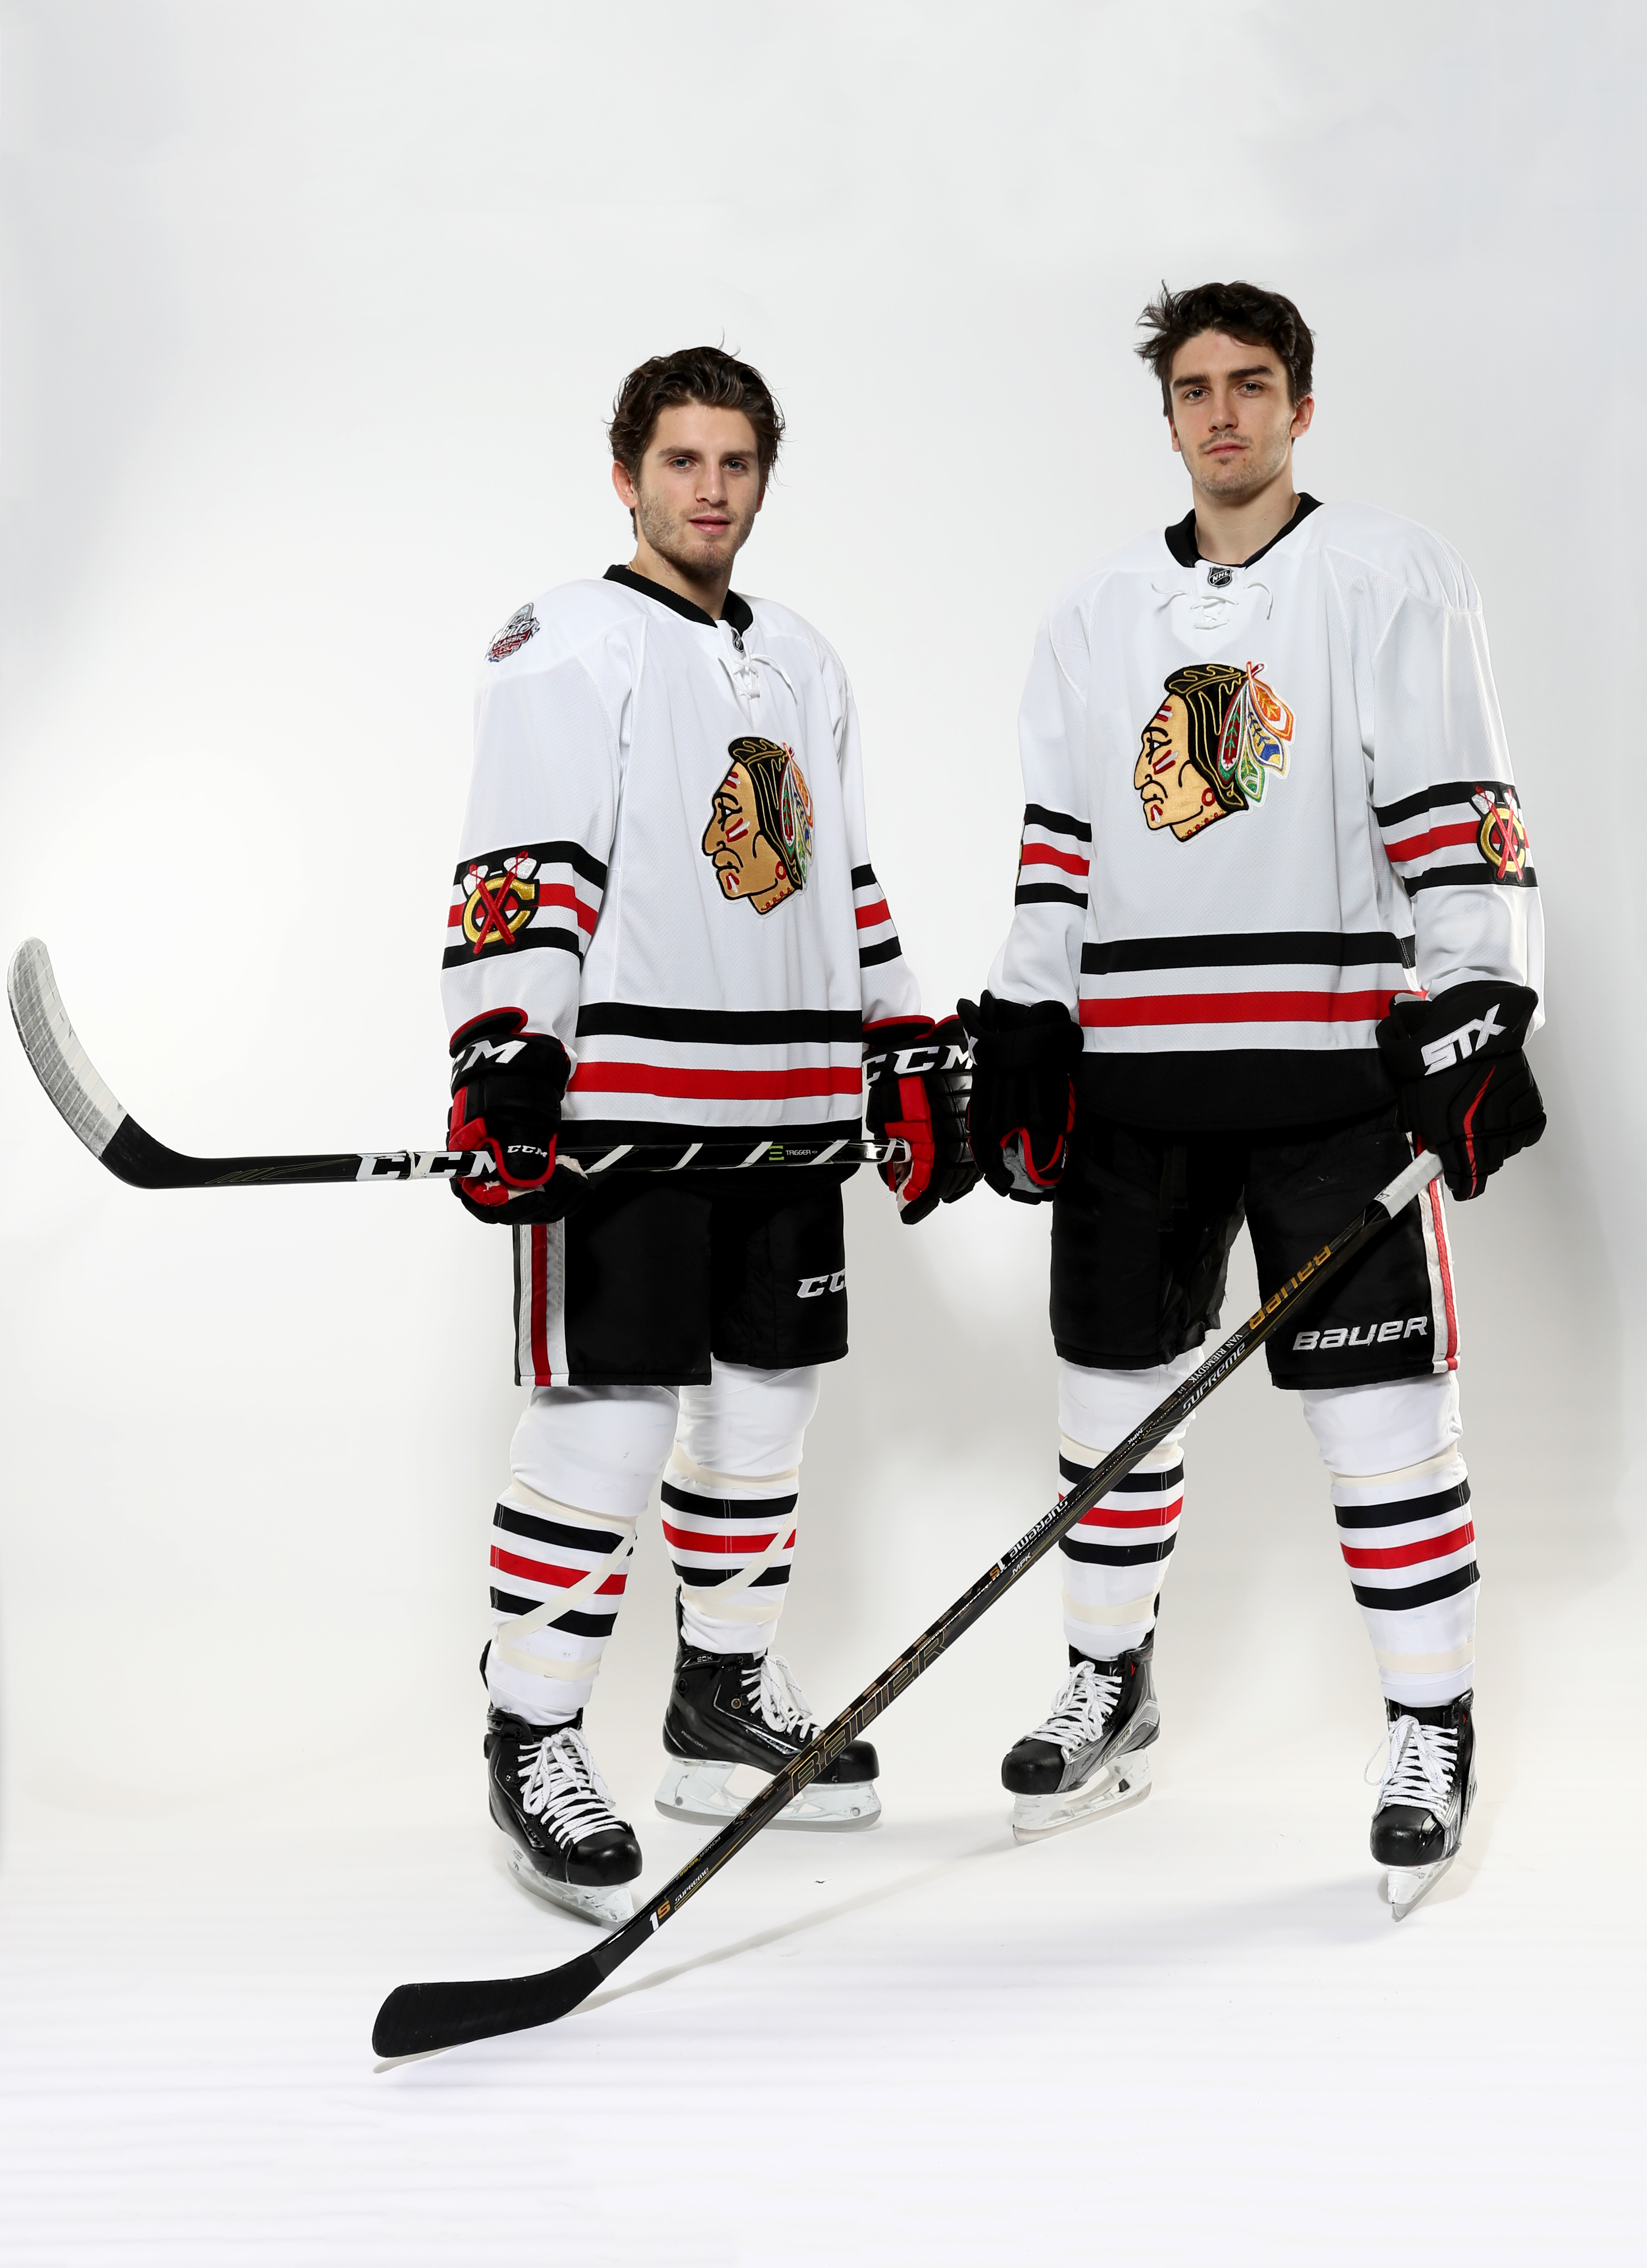 new arrival ec93c 839bc Blackhawks, Blues unveil Winter Classic jerseys - Sportsnet.ca